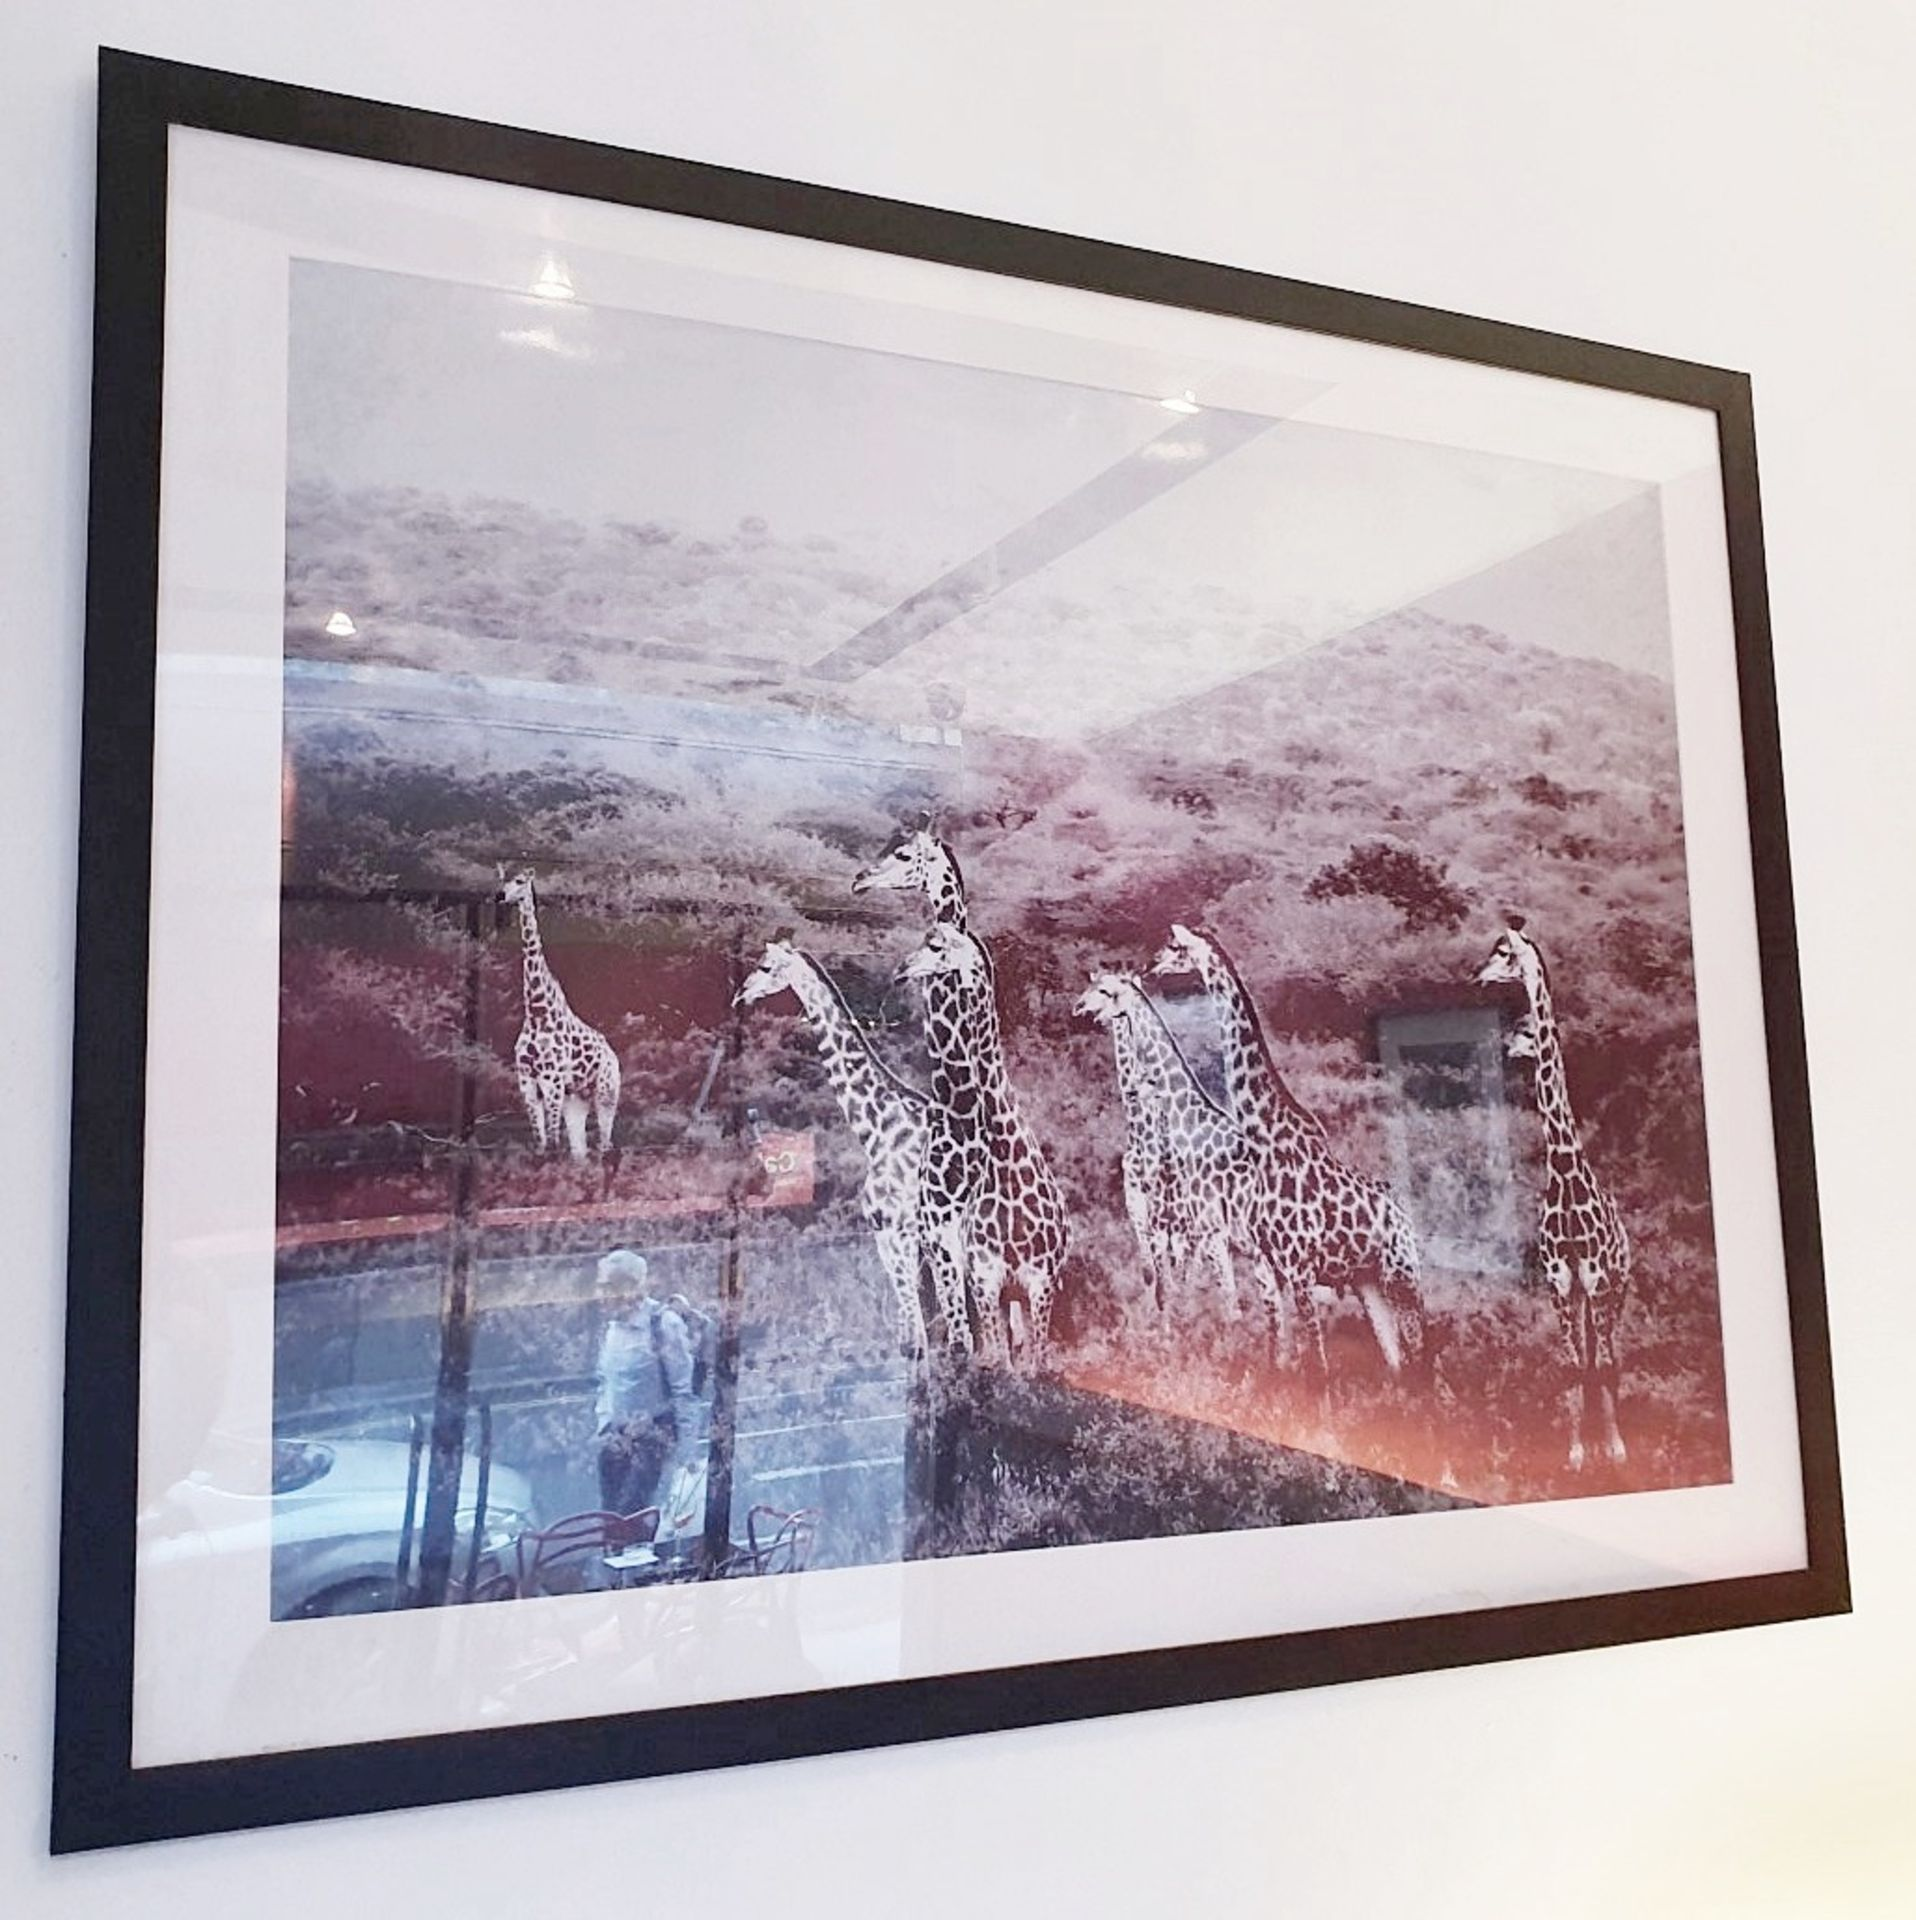 Lot 2636 - 1 x Large Framed Picture of a 'Tower' of Giraffes - Dimensions: w133cm x h105 - Ref: BRE002 -